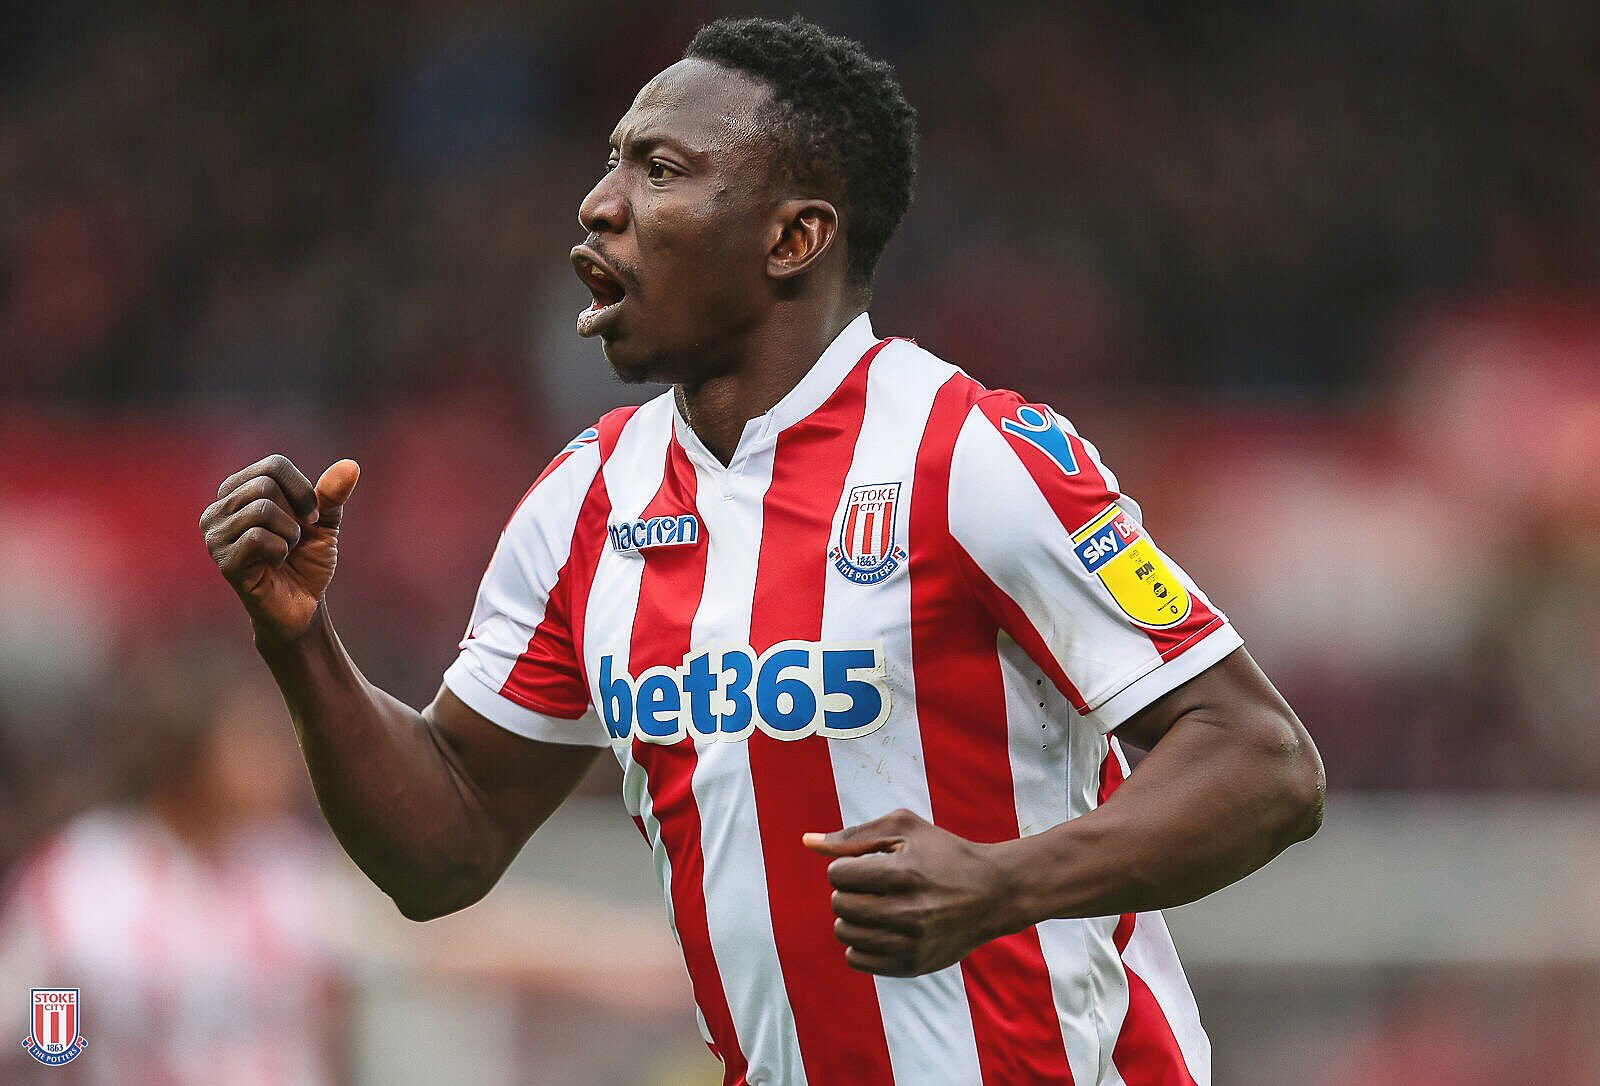 Etebo Linked with January Exit; Besiktas, Eibar Show Interest